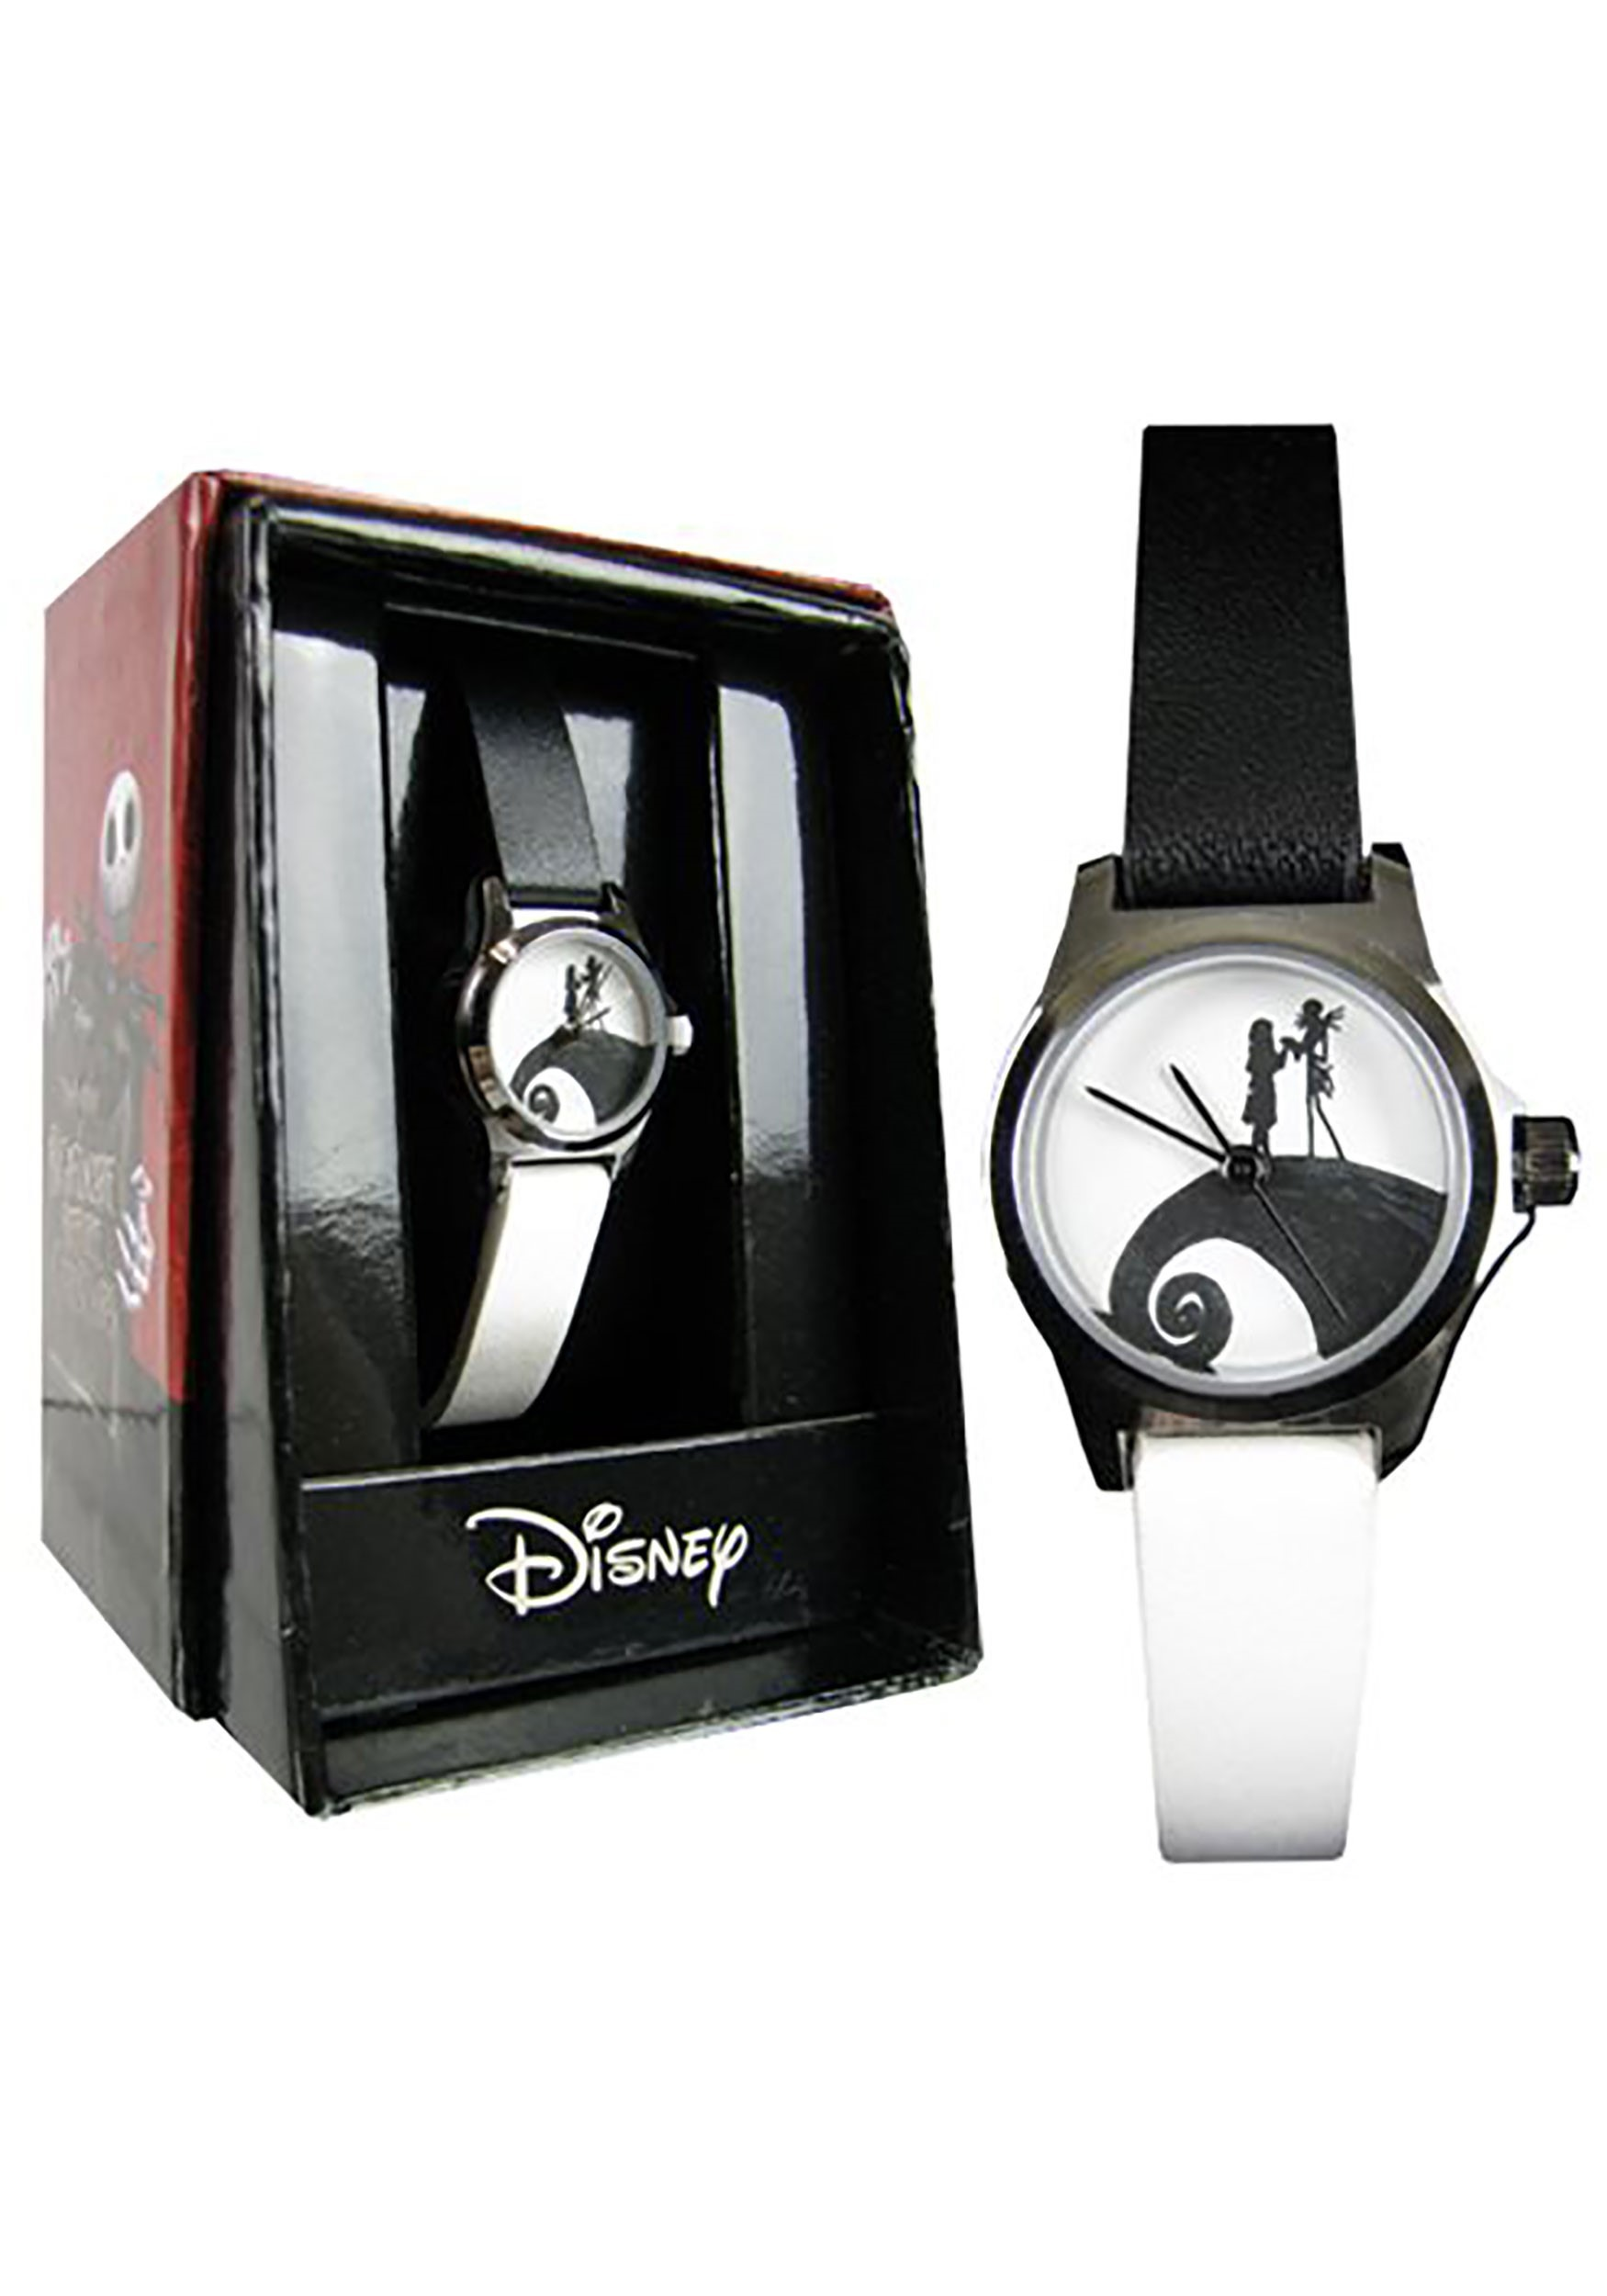 Nightmare Before Christmas Images Black And White.Nightmare Before Christmas Watch Black White Strap